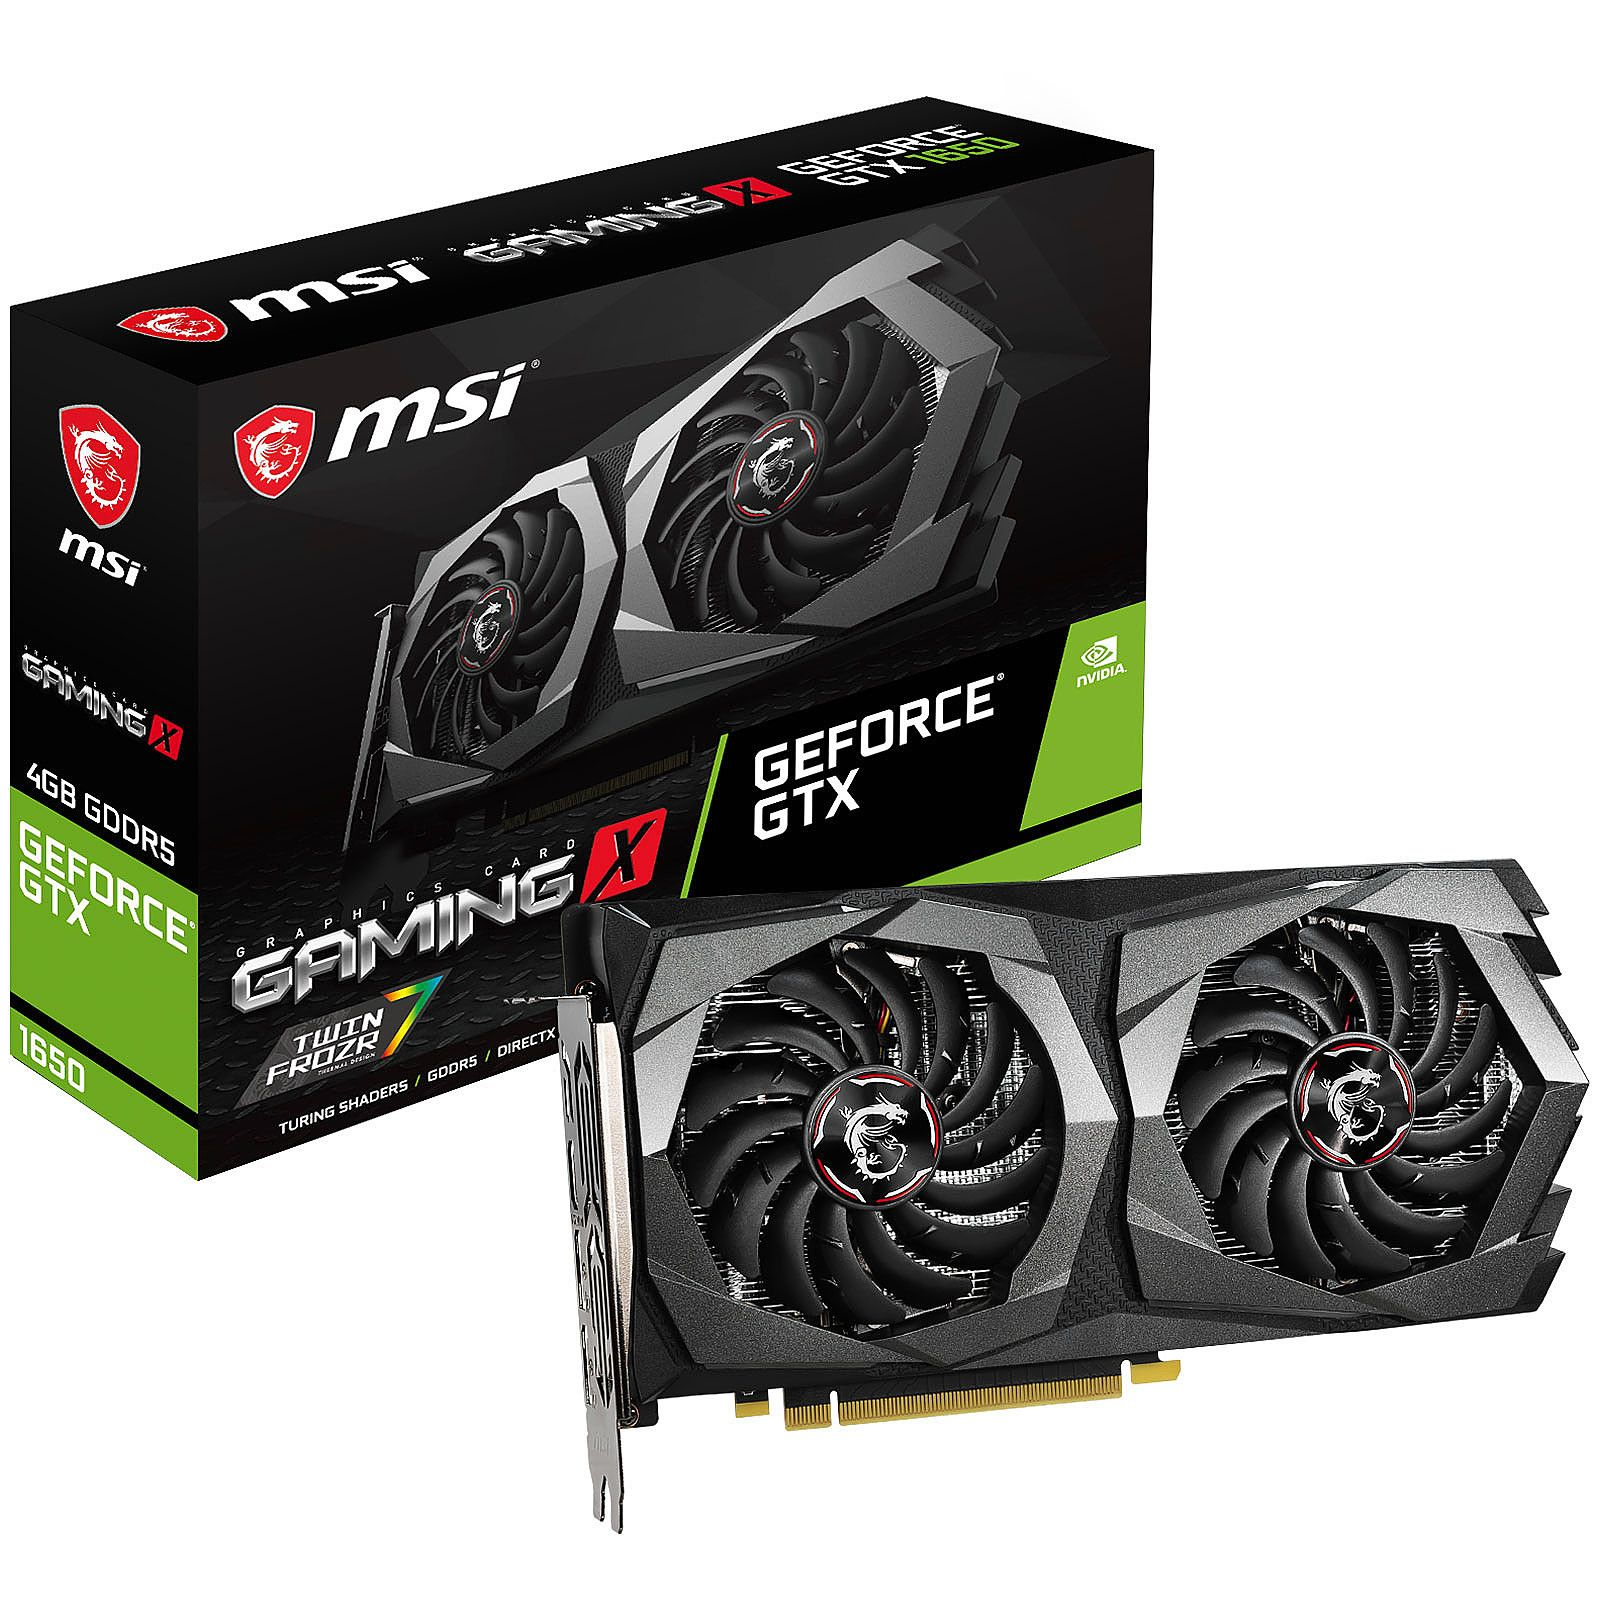 tarjeta-de-video-msi-geforce-gtx-1650-gaming-4gb-gddr5-128-bit-pci-e-3-0-